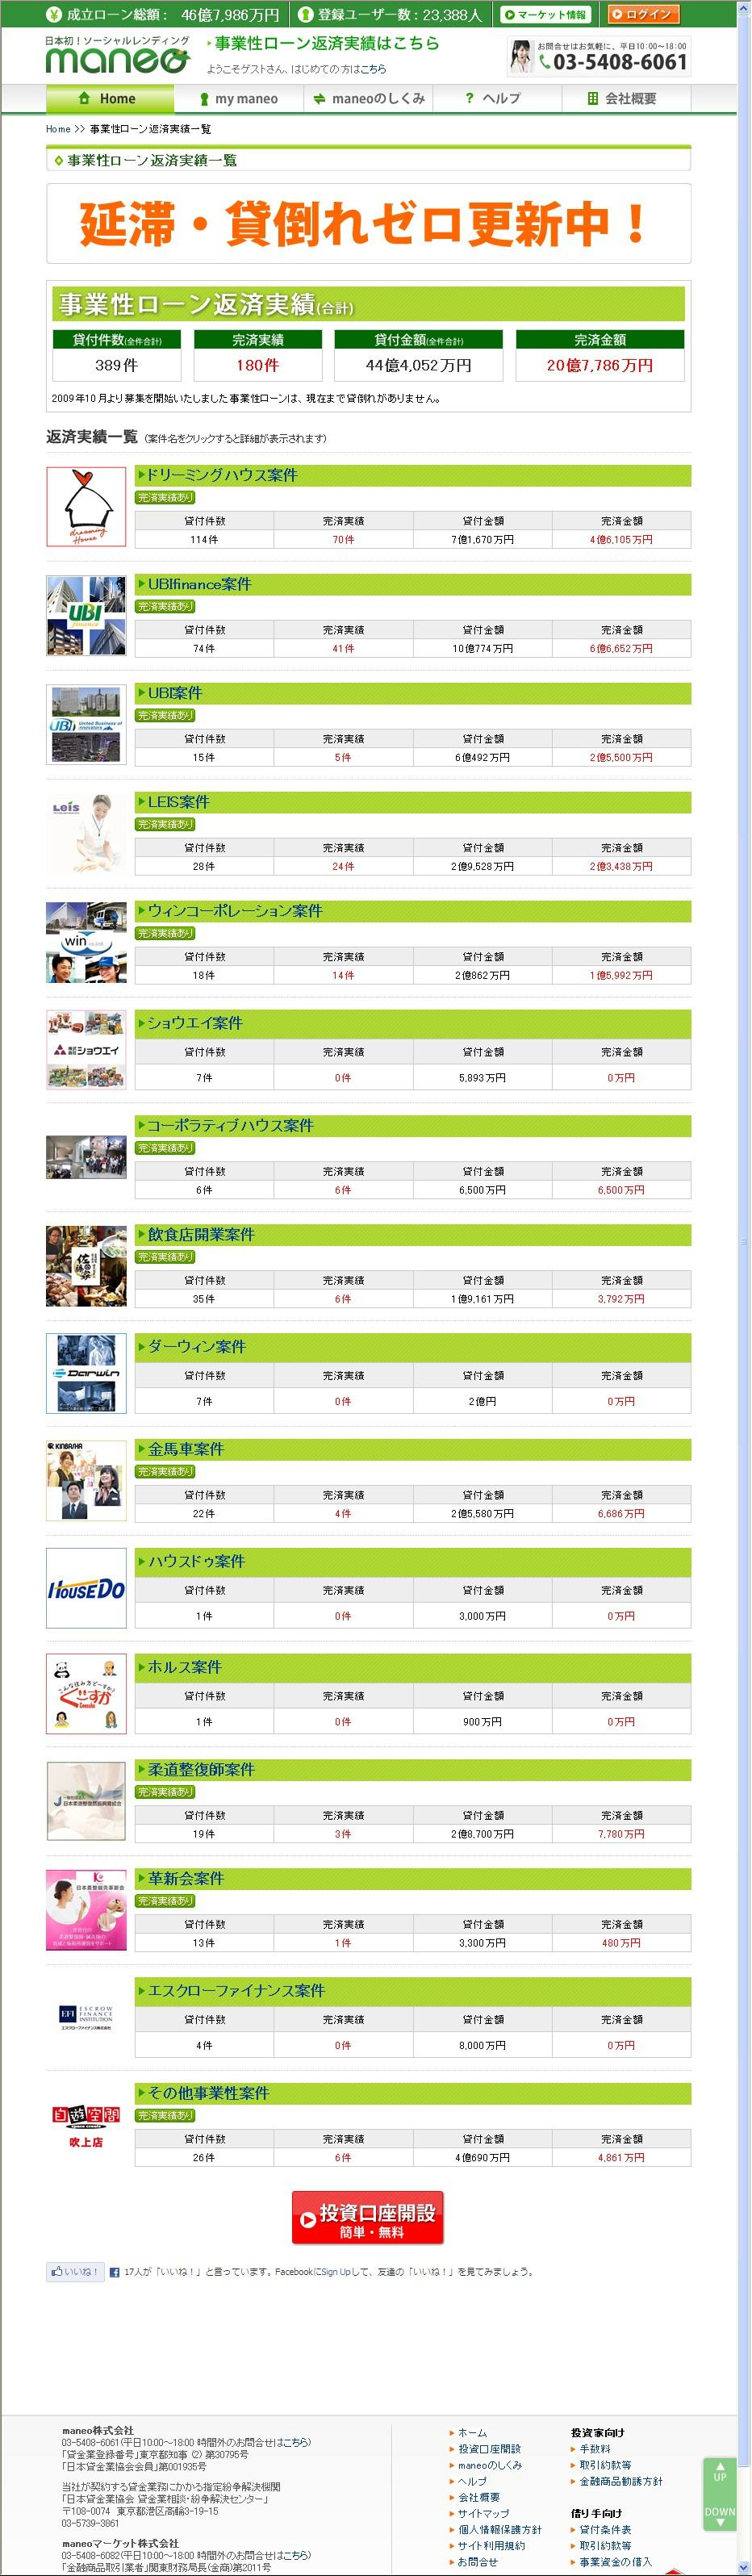 marketinfo201209.jpg